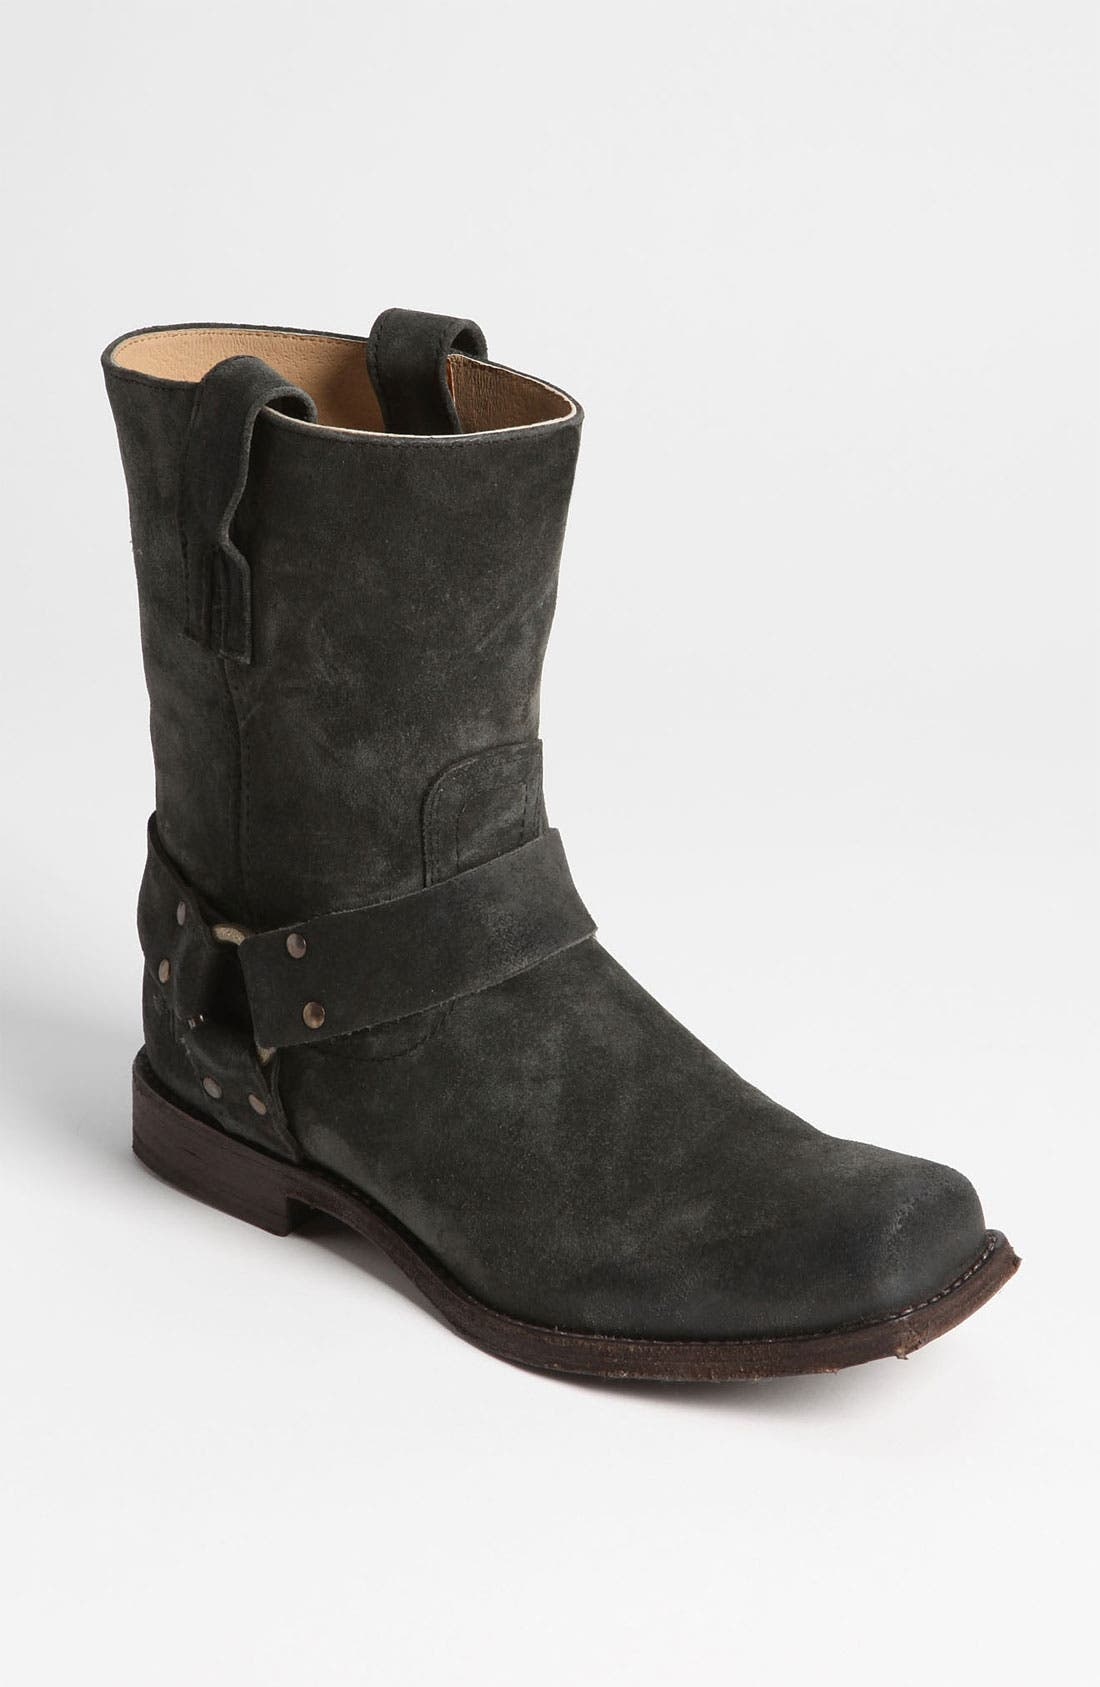 Alternate Image 1 Selected - Frye 'Smith' Harness Boot